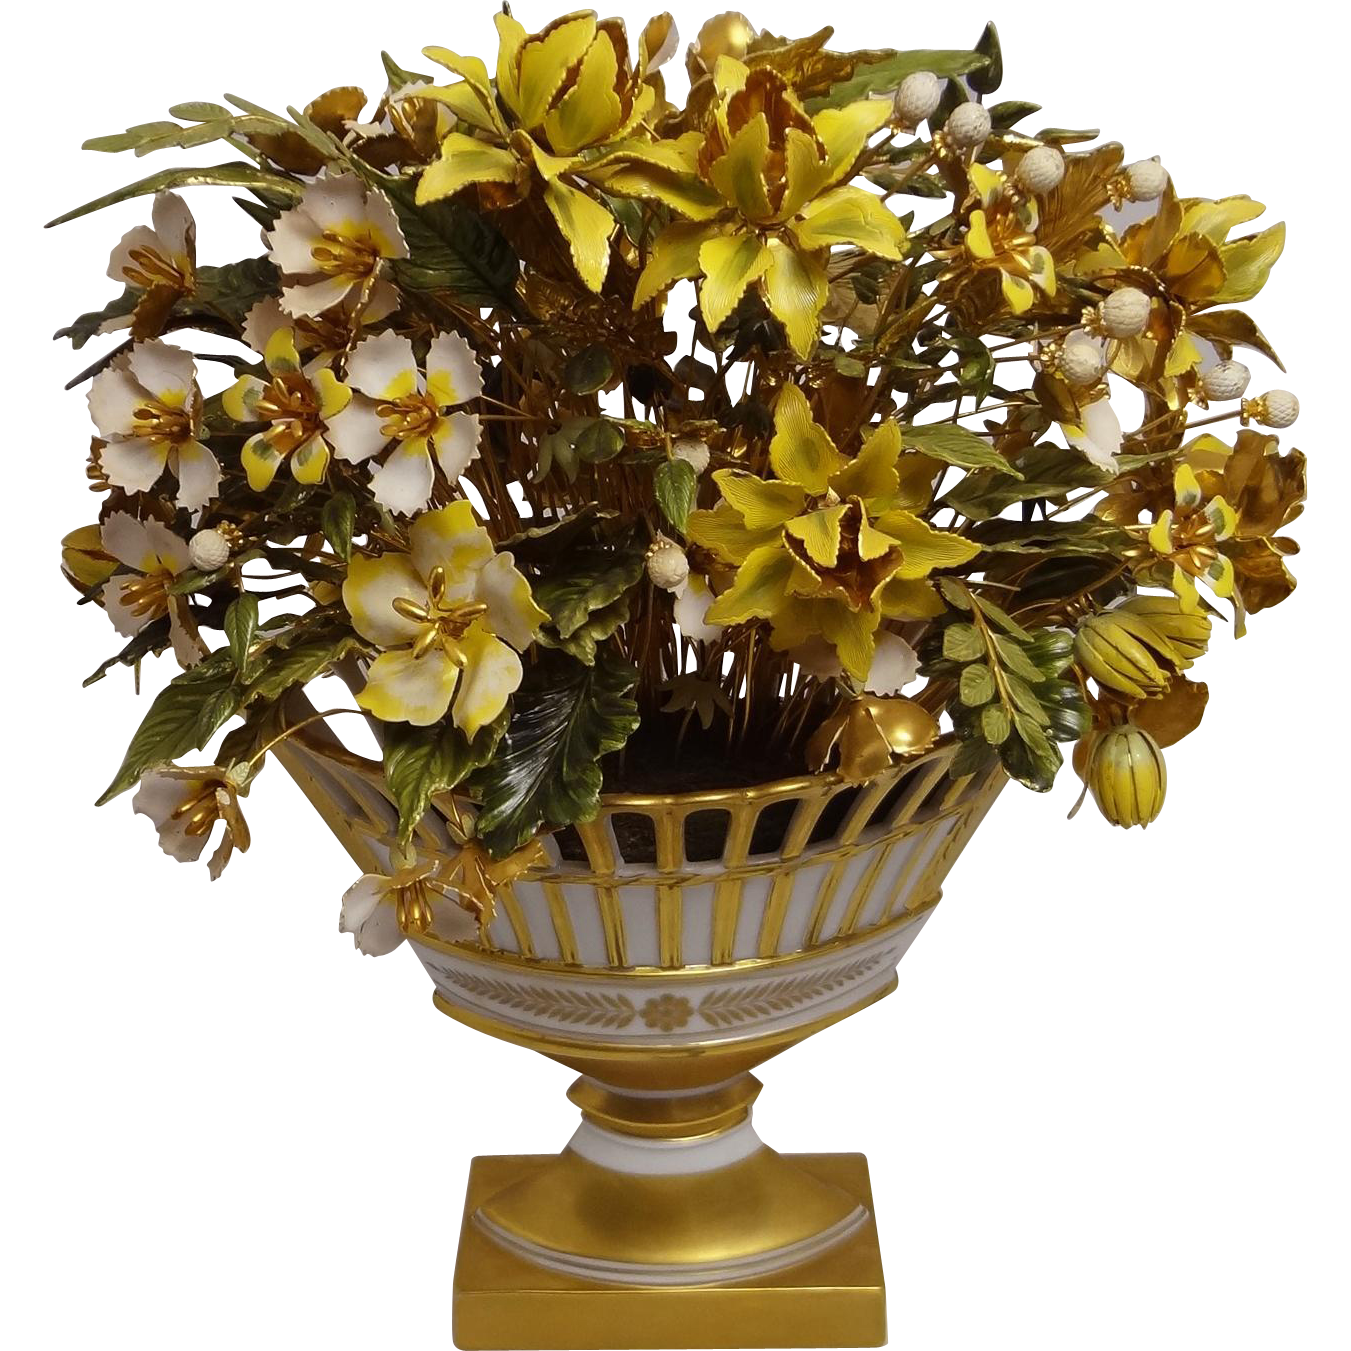 Large Jane Hutcheson Fleurs des Siecles Enamel Flower Arrangement in Reticulated White Gilt Porcelain Centerpiece for Gorham  - c. 1870's-80's, USA